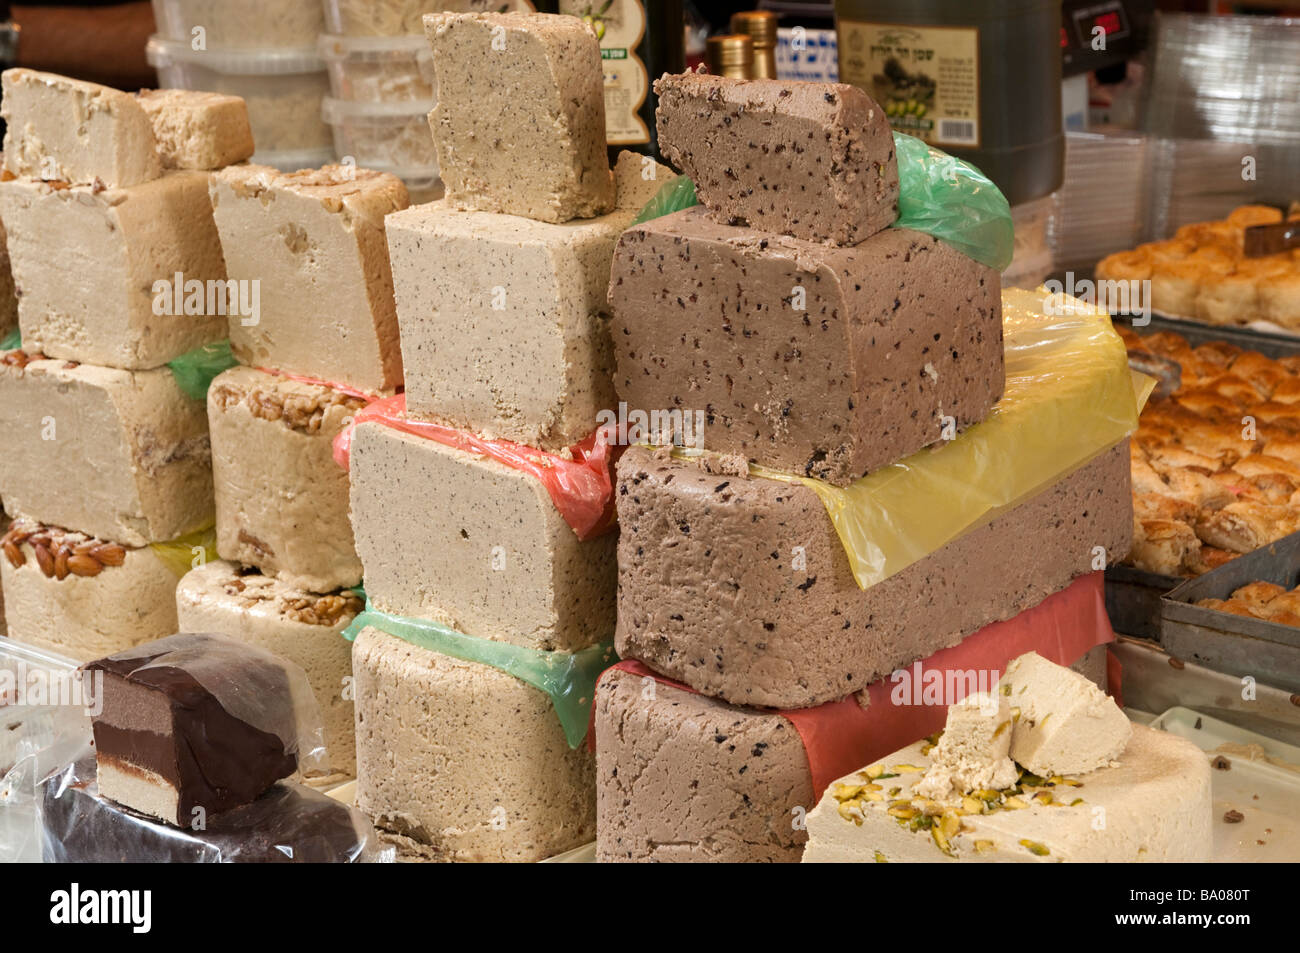 Halva on a food stall in Carmel Market, Tel Aviv, Israel - Stock Image